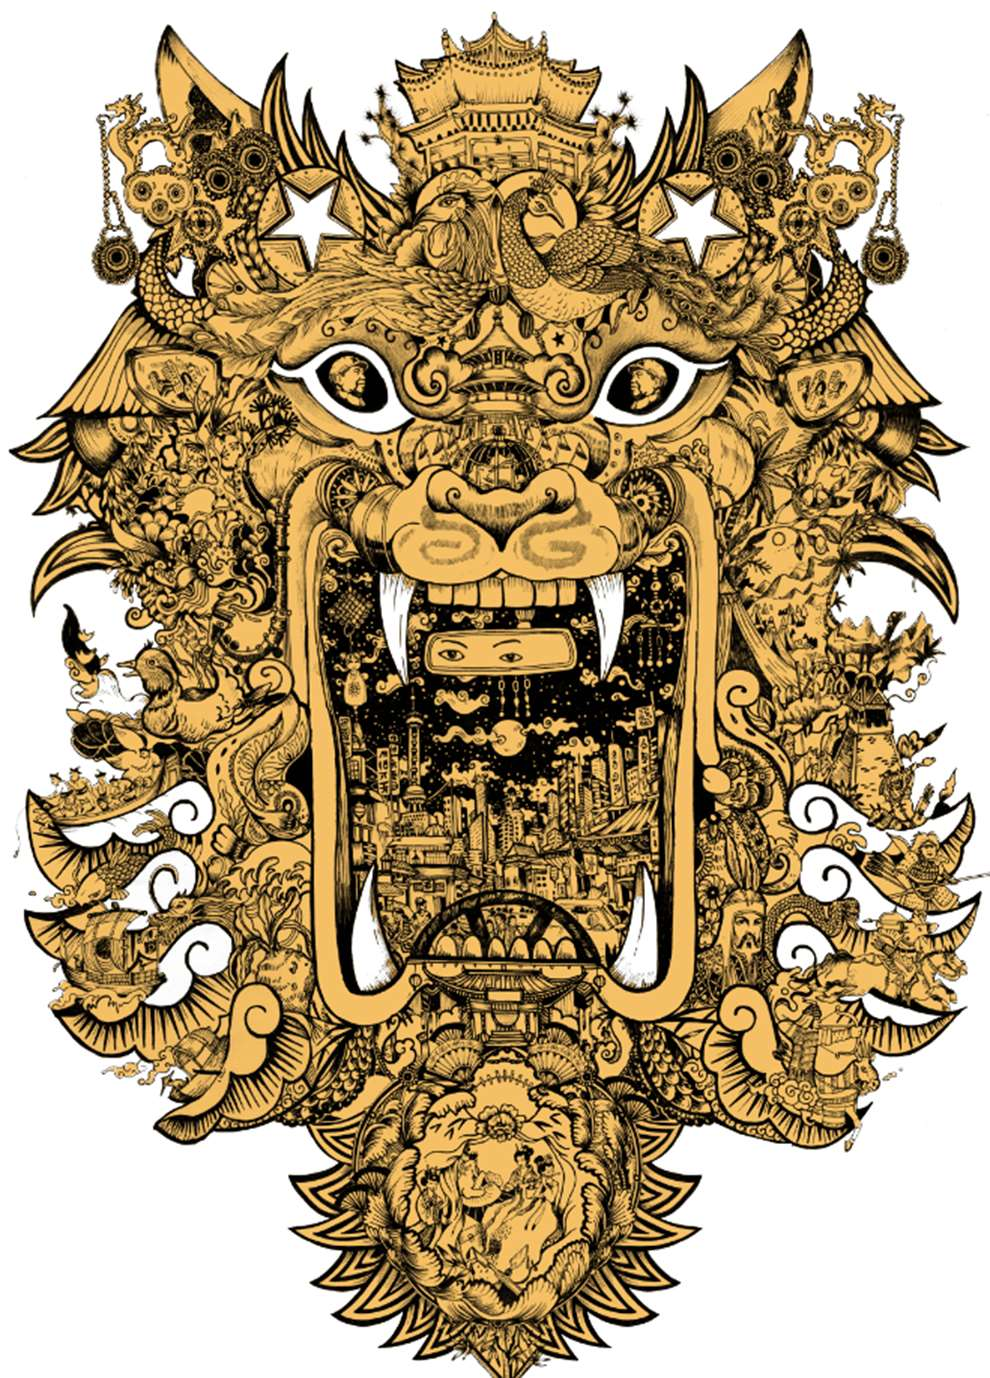 Good Wives and Warriors, decorative and ornaments gold tiger mask using elements of city and travel